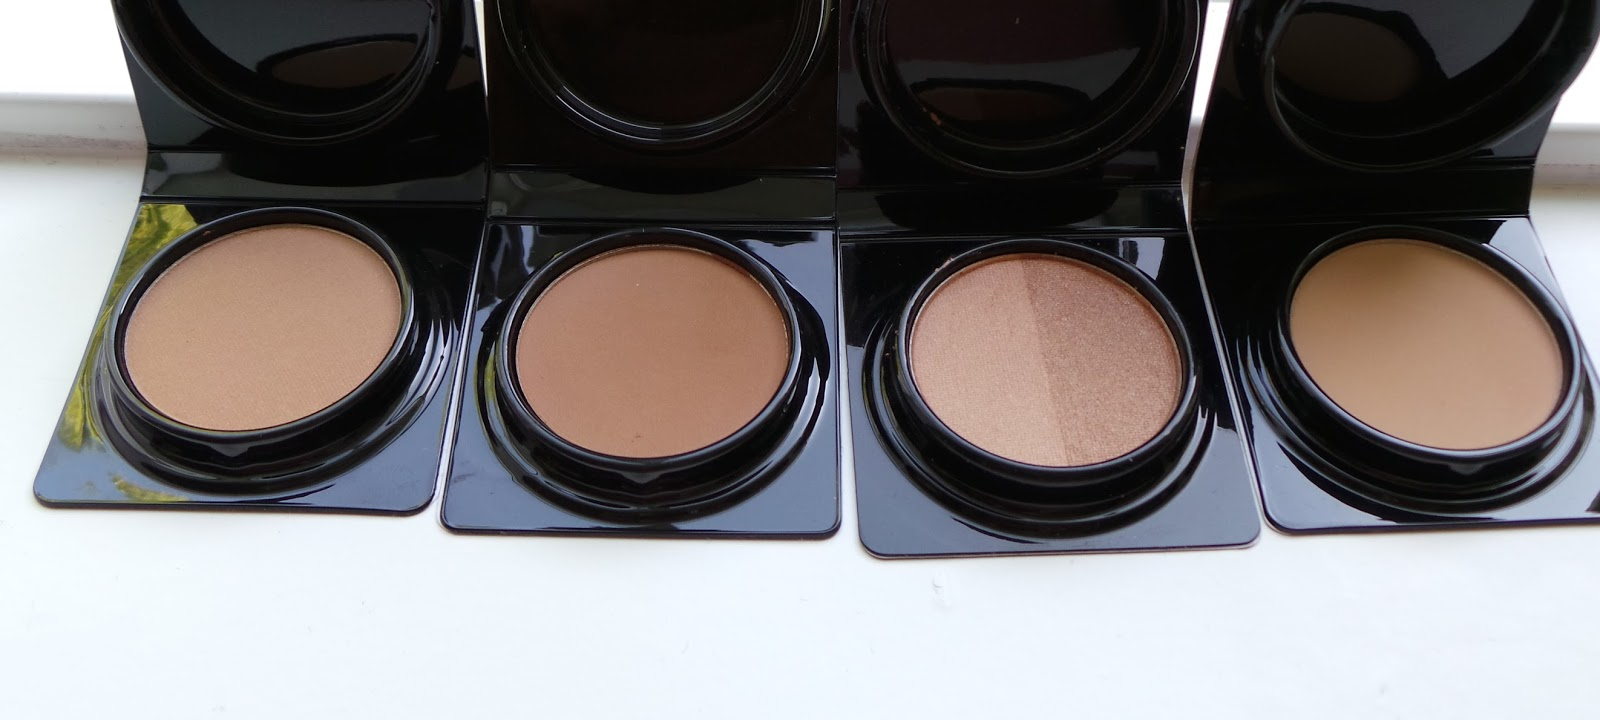 Confessions Of The Pretty Kind: Too Faced Five Piece Bronzer ...